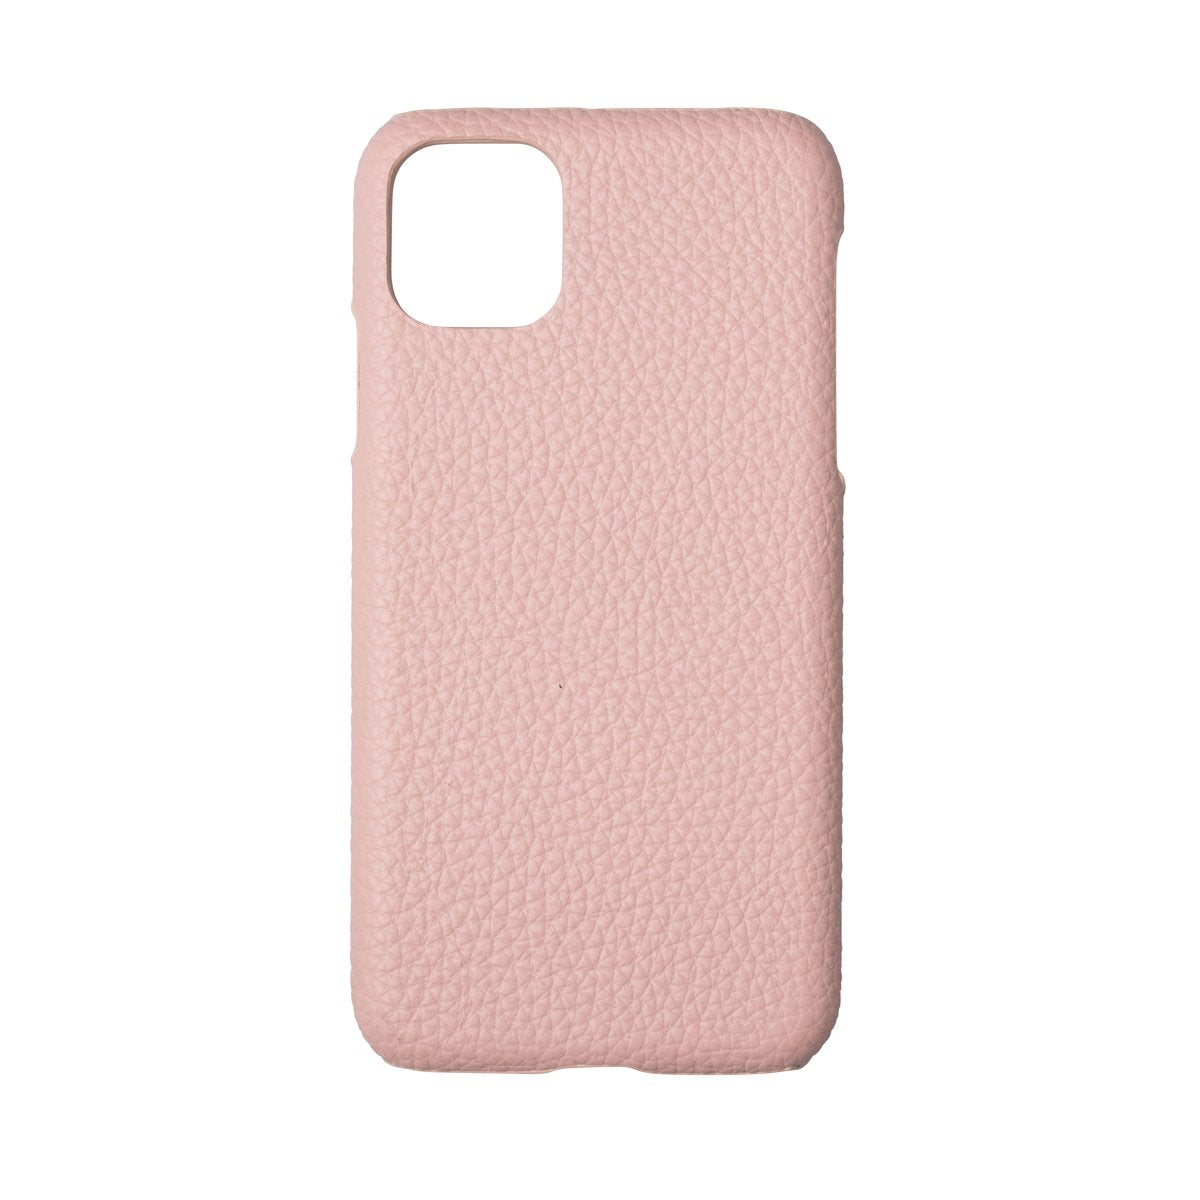 Blush Pink Phone Case (iPhone 11)